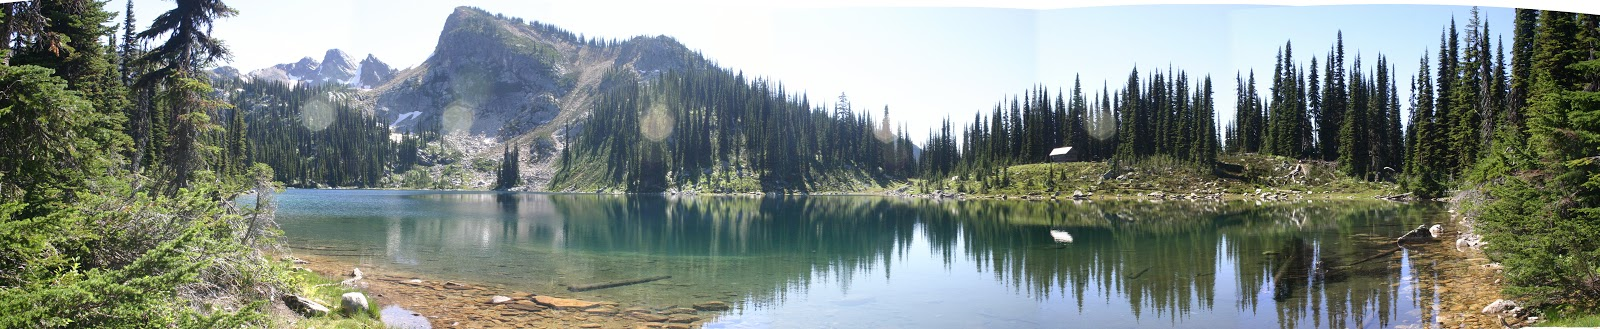 Eva Lake, Mount Revelstoke National Park. Panorama taken by Derek Leung.